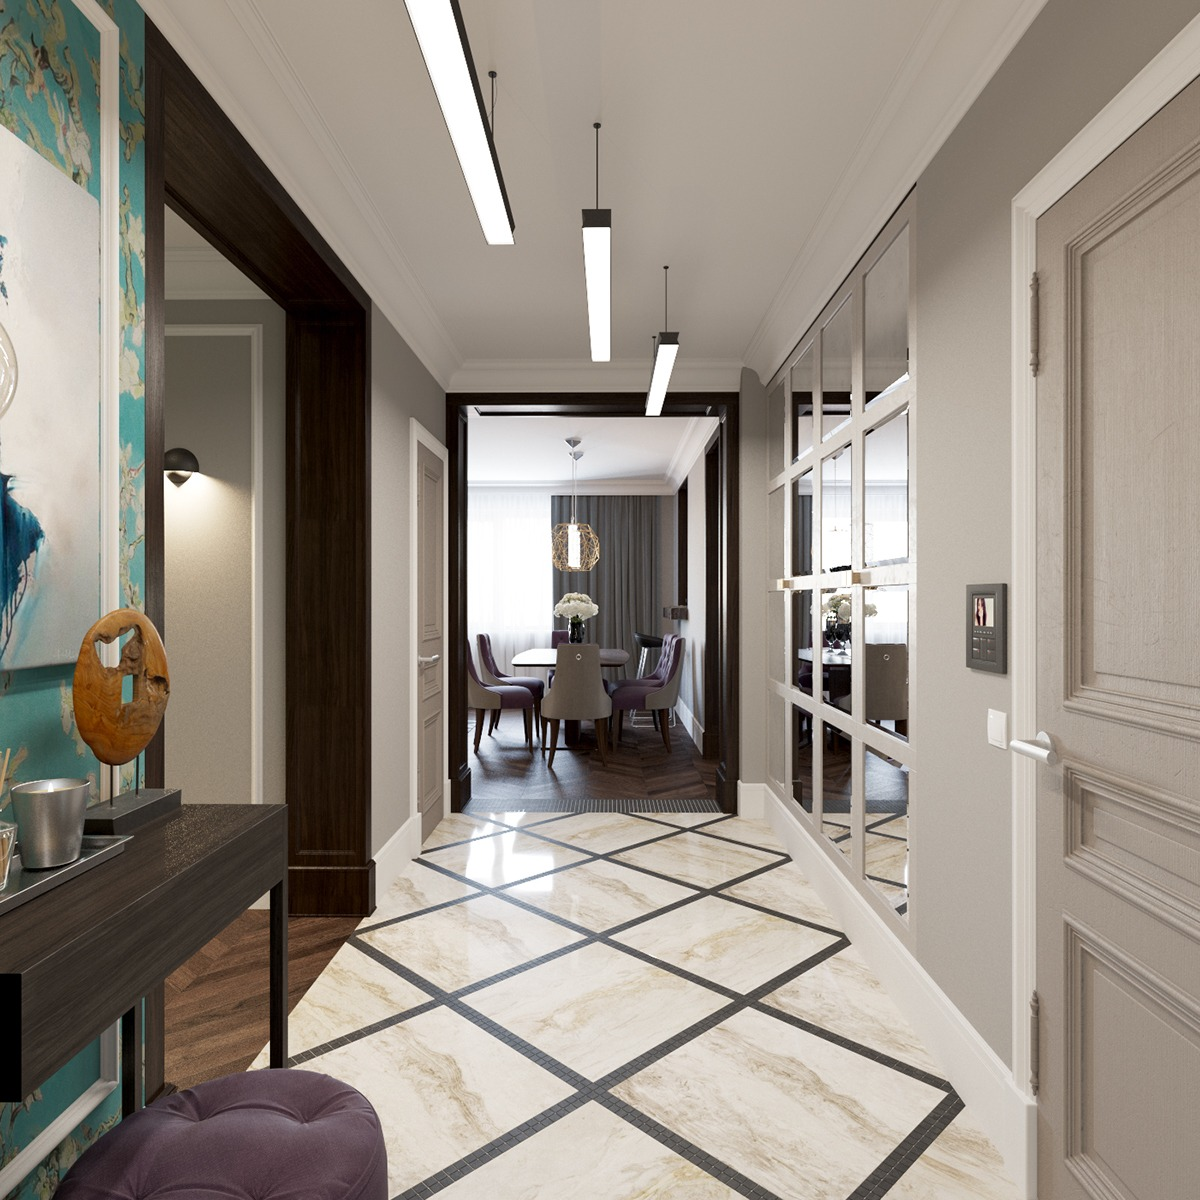 2 beautiful home interiors in art deco style Images of home interior